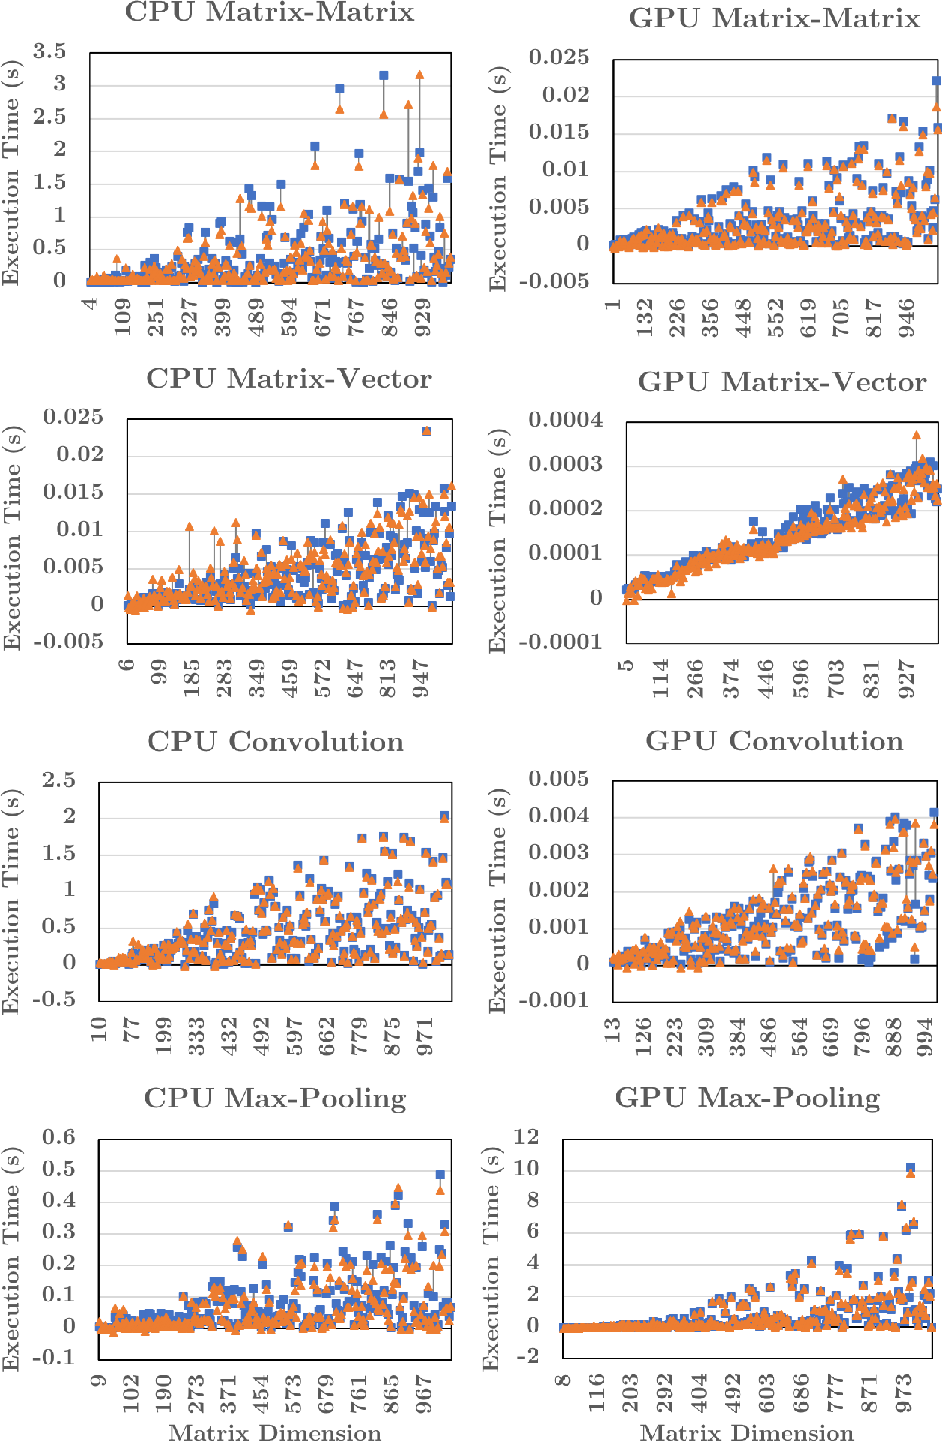 Figure 4 for Towards High Performance, Portability, and Productivity: Lightweight Augmented Neural Networks for Performance Prediction